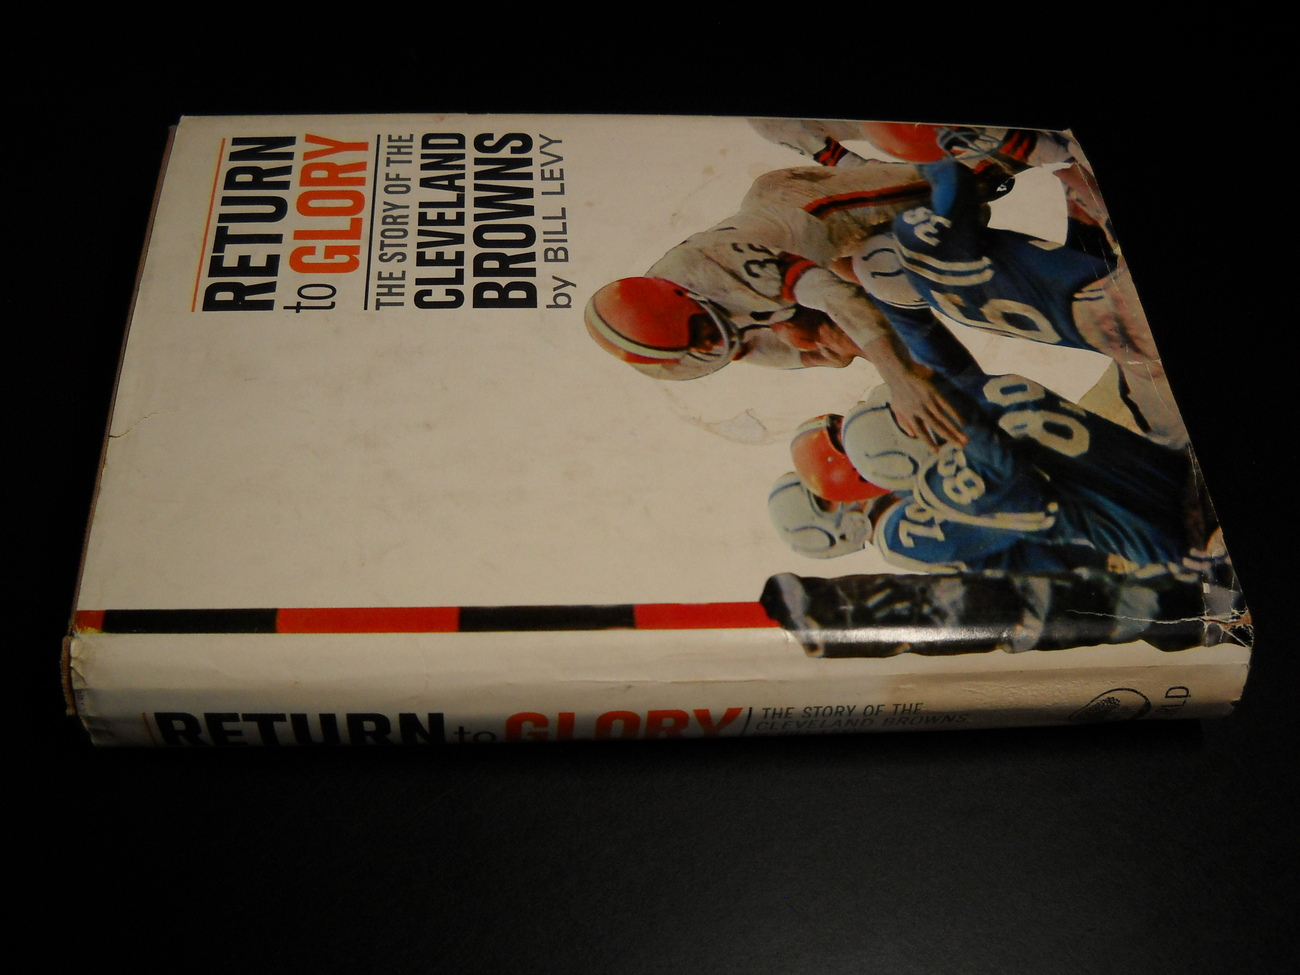 Book levy return to glory hcdj 1965 first edition 01